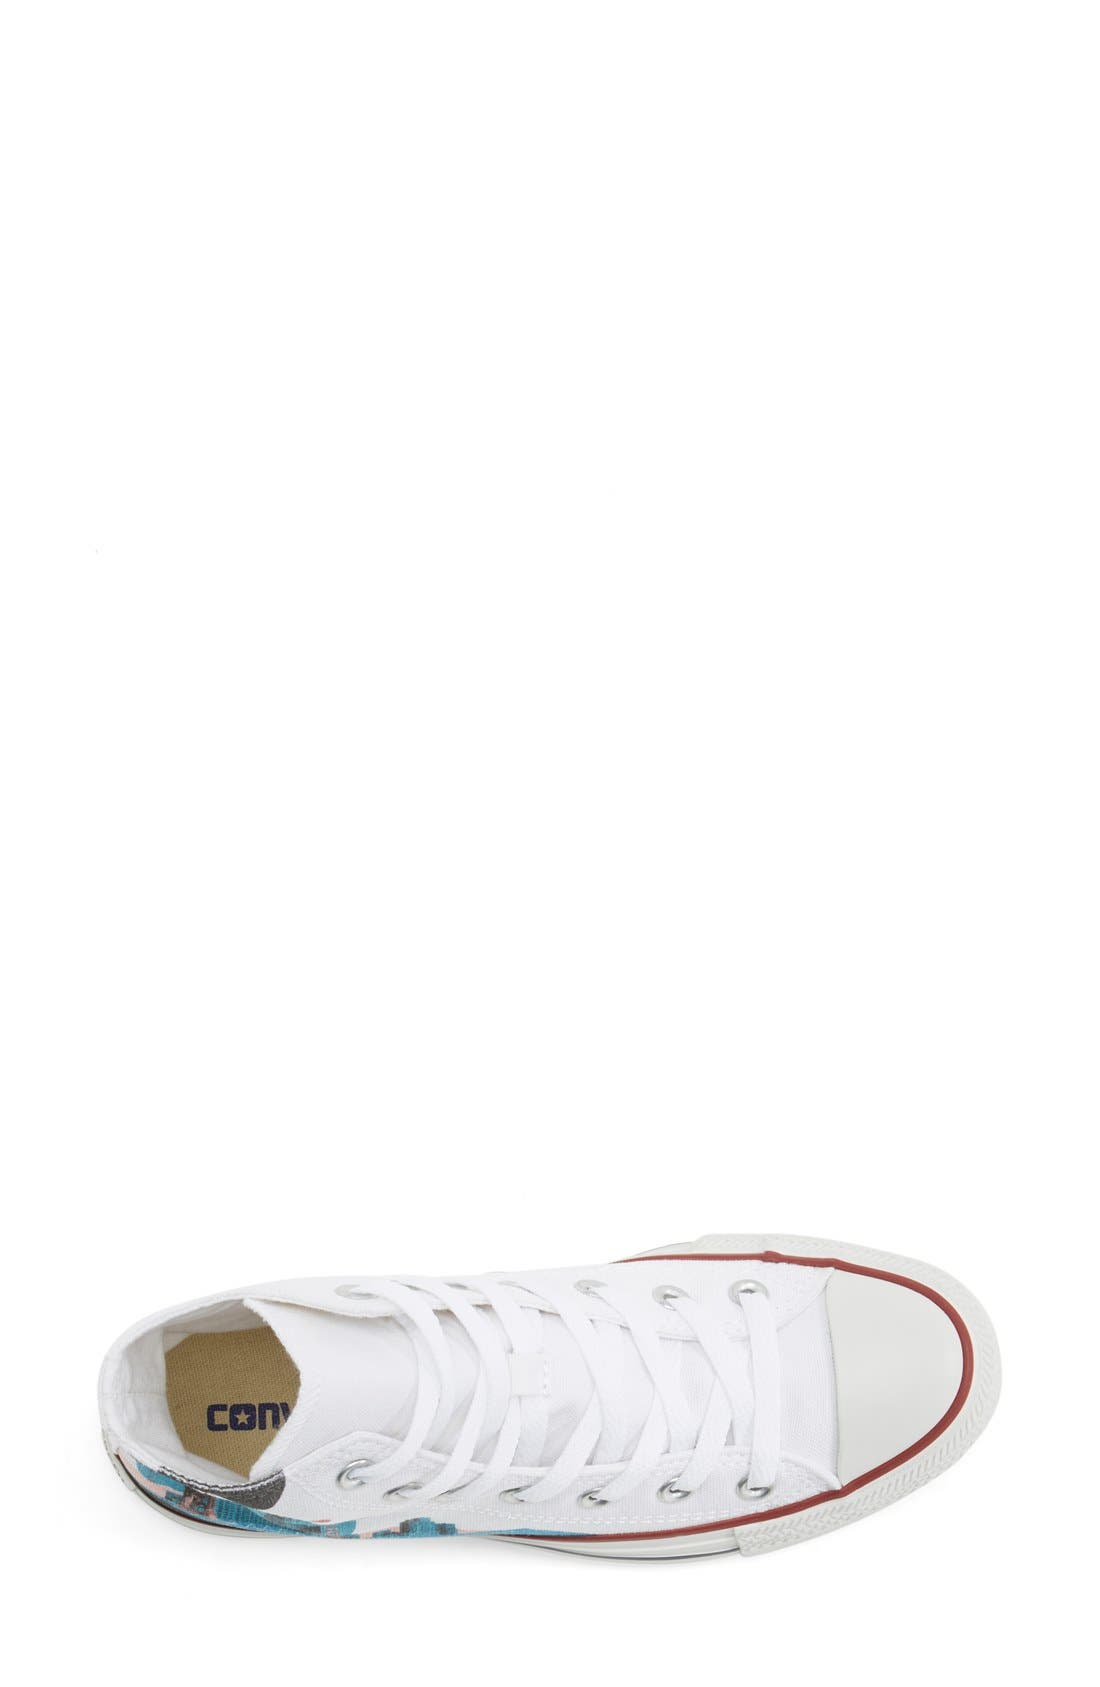 Alternate Image 3  - Converse Chuck Taylor® All Star® 'Made By You - San Francisco' High Top Sneaker (Women)